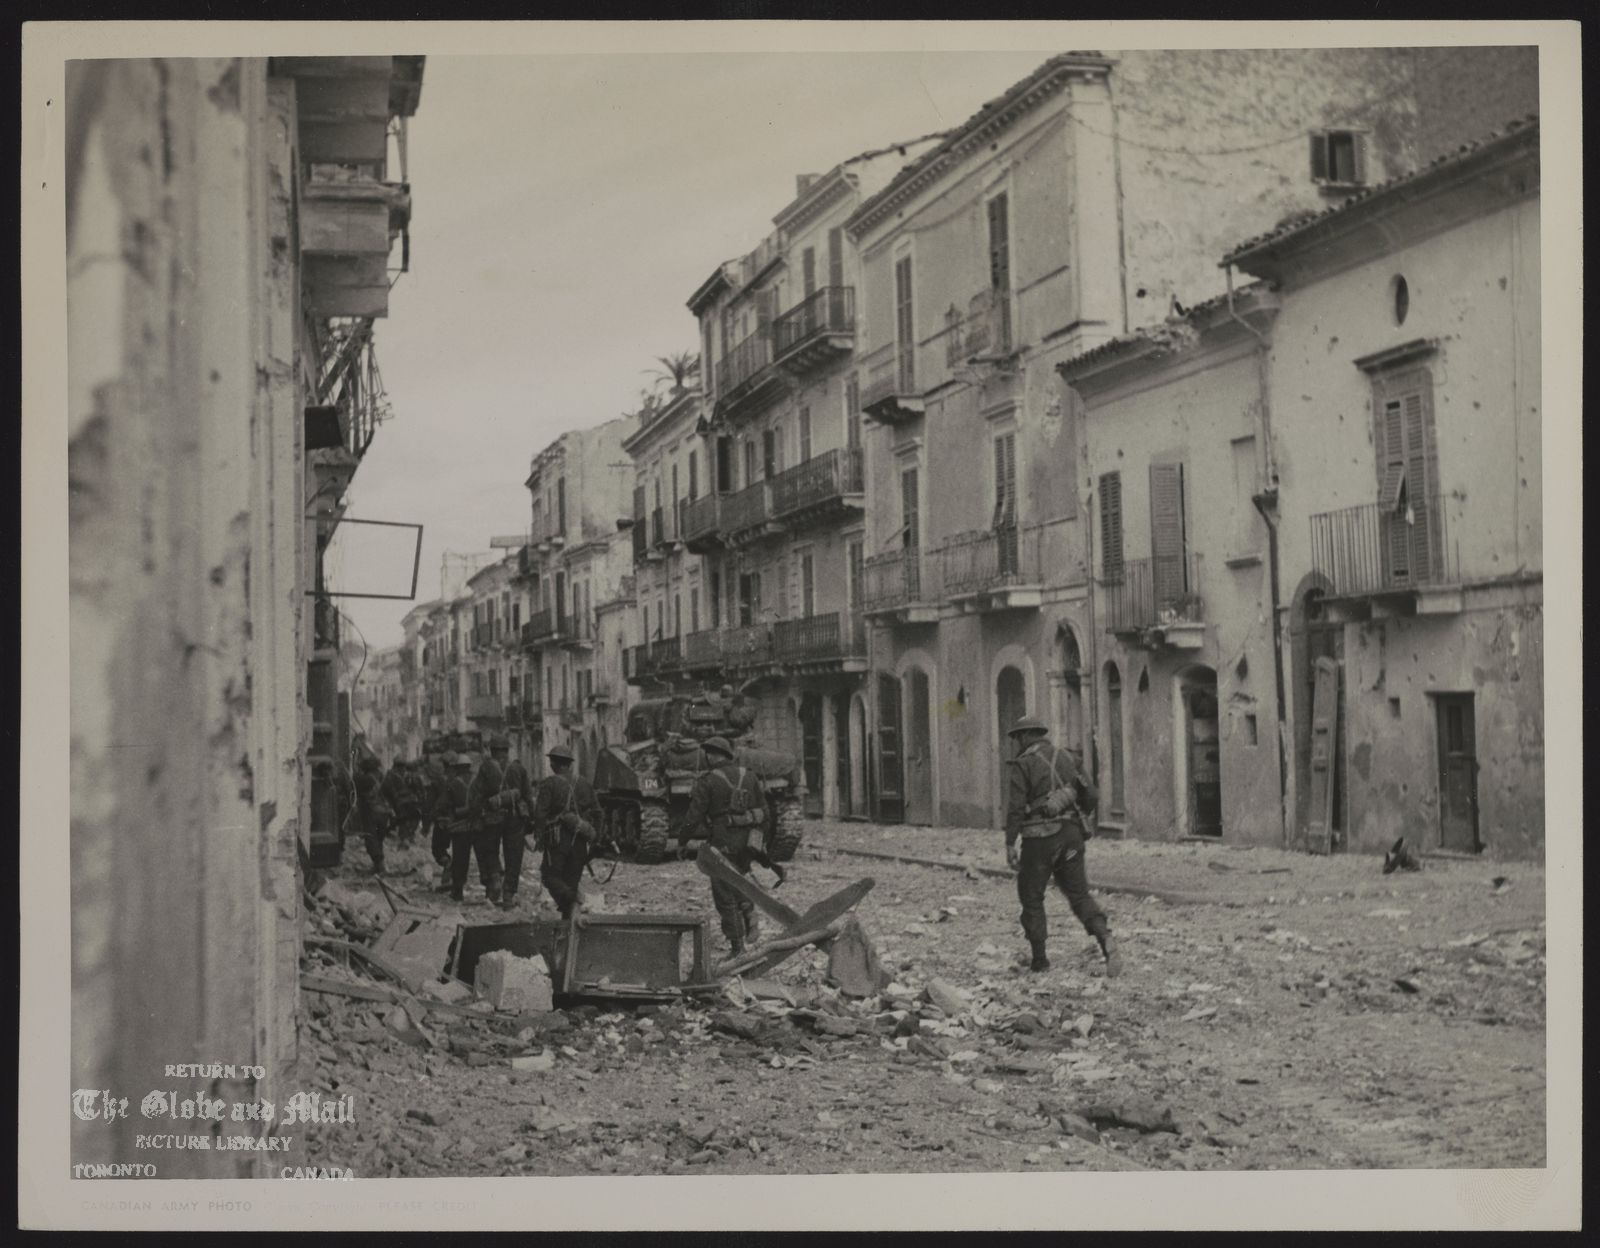 WORLD WAR II Canada Forces in Italy 27991-N-WESTERN CANADA UNIT ADVANCE IN ORTONA Victory march in Ortona. Western Canadian infantry move up rubble-piled street after driving the Germans from this bitterly defended town. (Canadian Army Overseas Photo) Item part of: Canada. Dept. of National Defence collection [Infantry of the Edmonton Regiment supported by 'Sherman' tanks of the Three Rivers Regiment, Ortona, Italy, 23 December 1943.]